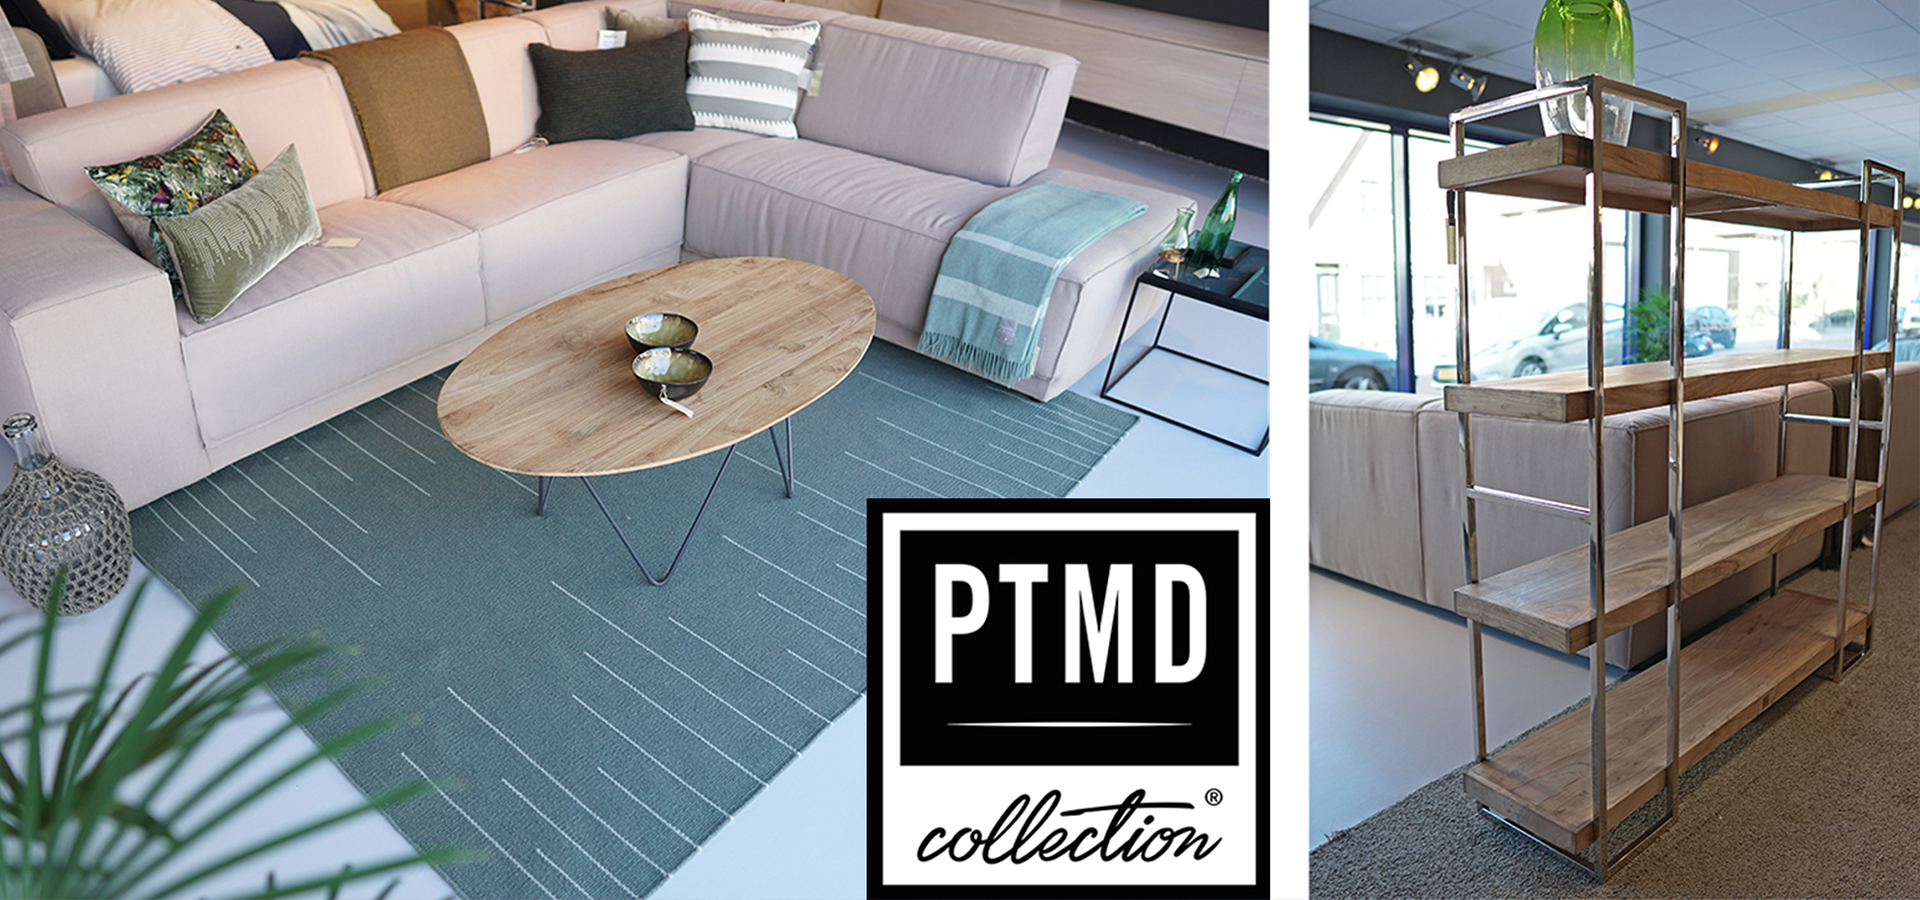 PTMD Banner Home